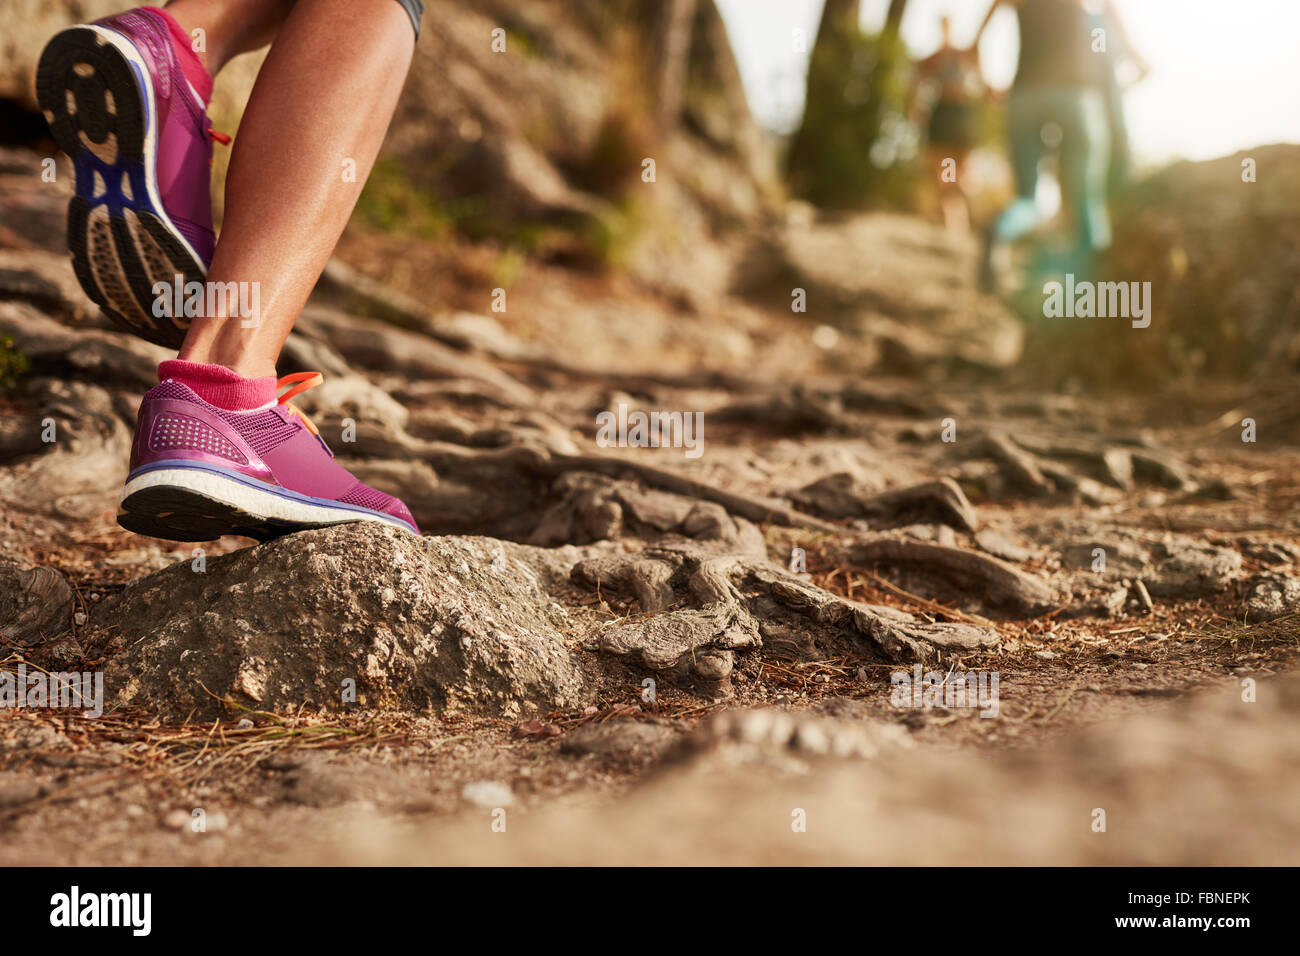 Close up of an athlete's feet wearing sports shoes on a challenging dirt track. Trail running workout on rocky - Stock Image